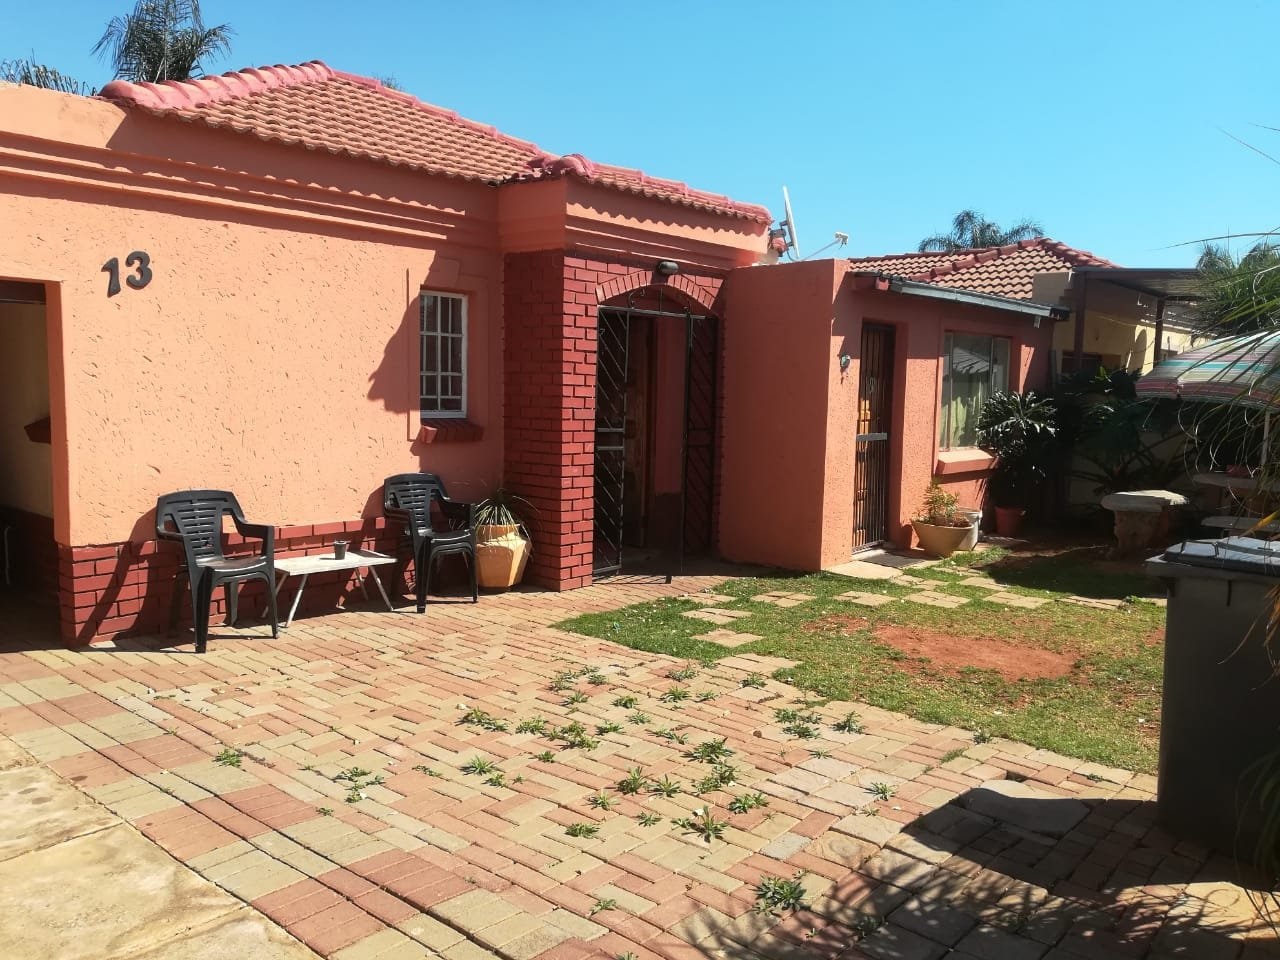 2 Bedroom house for sale in Eloffsdal